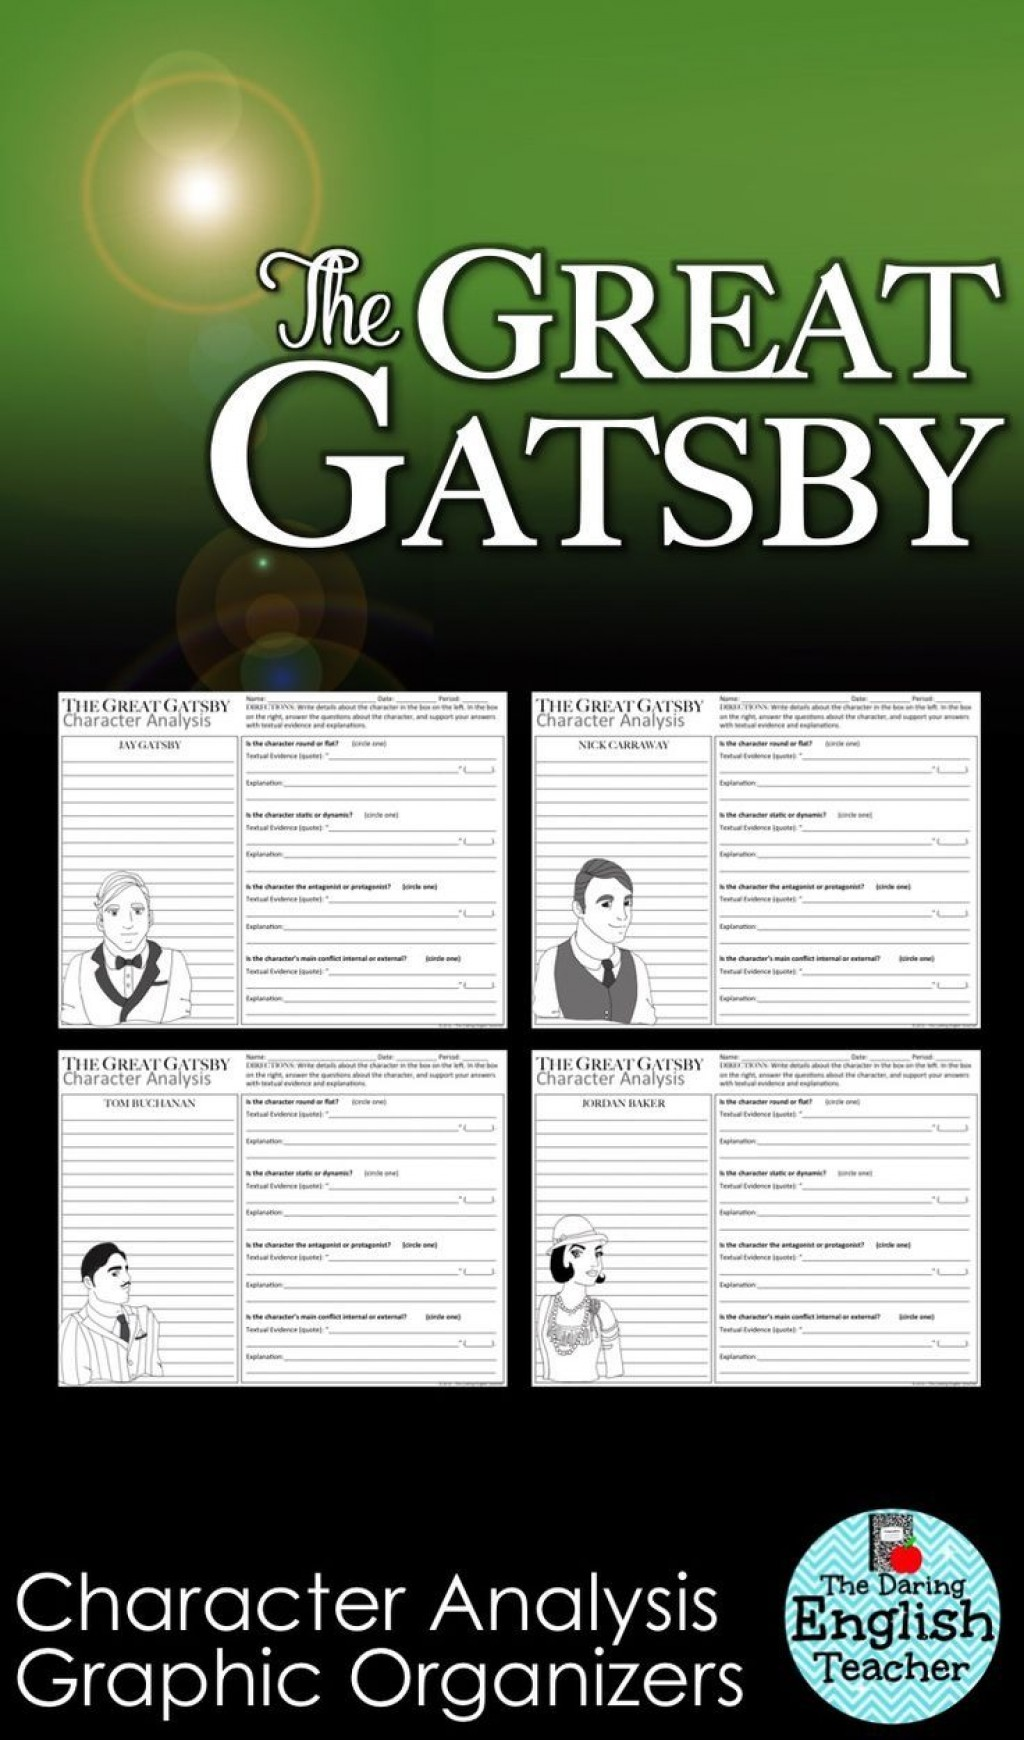 019 The Great Gatsby Essay Topics Example Exceptional Prompts American Dream Questions And Answers Research Large